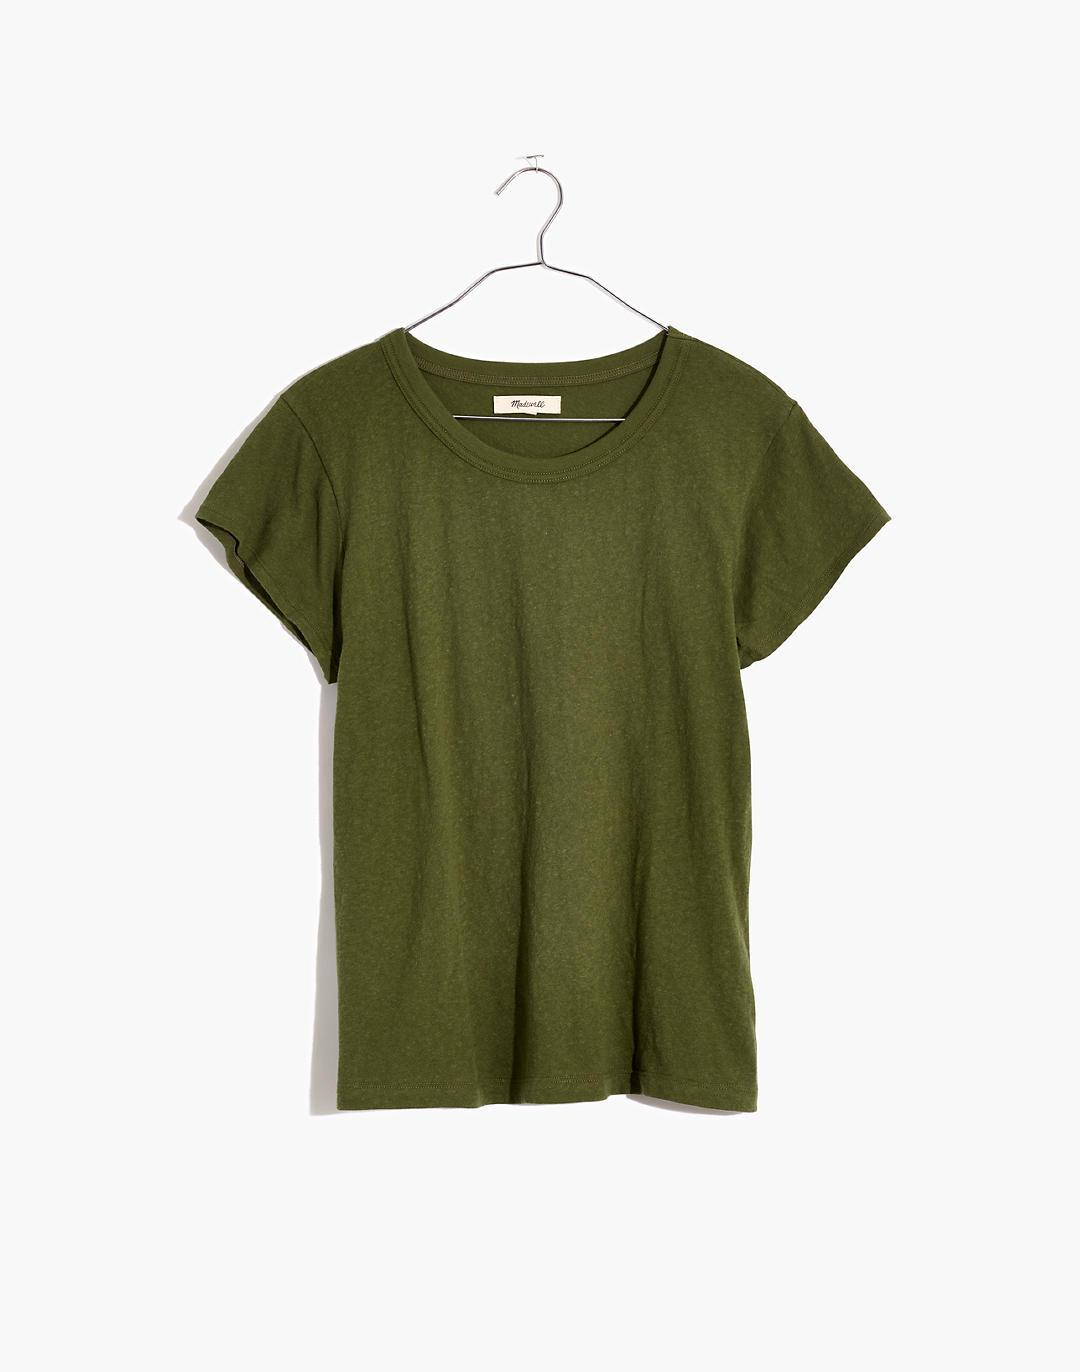 The Perfect Vintage Tee